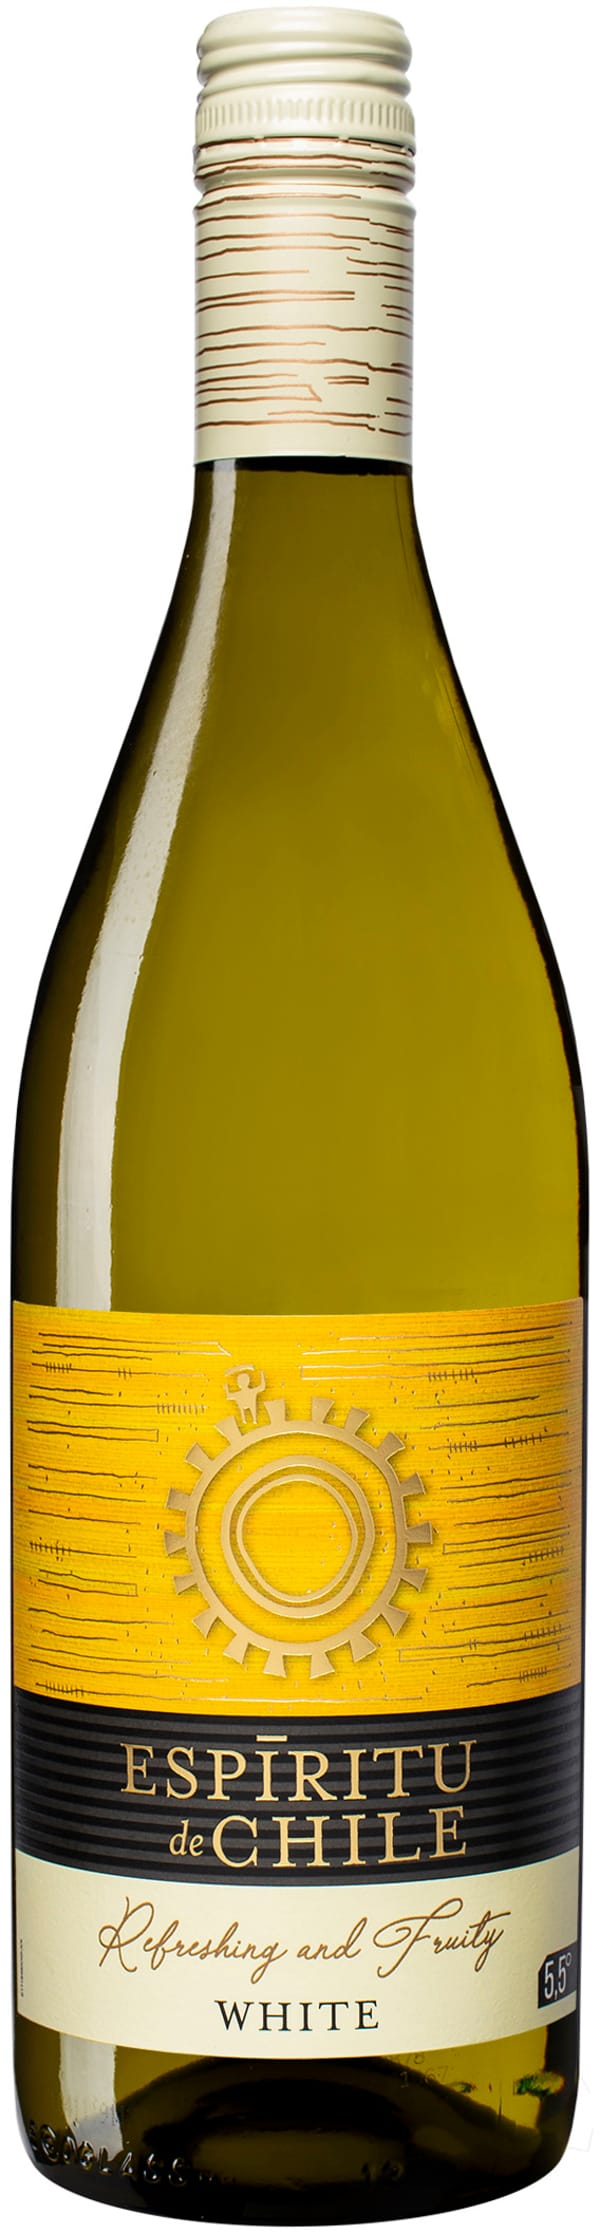 Espiritu de Chile Refreshing & Fruity White